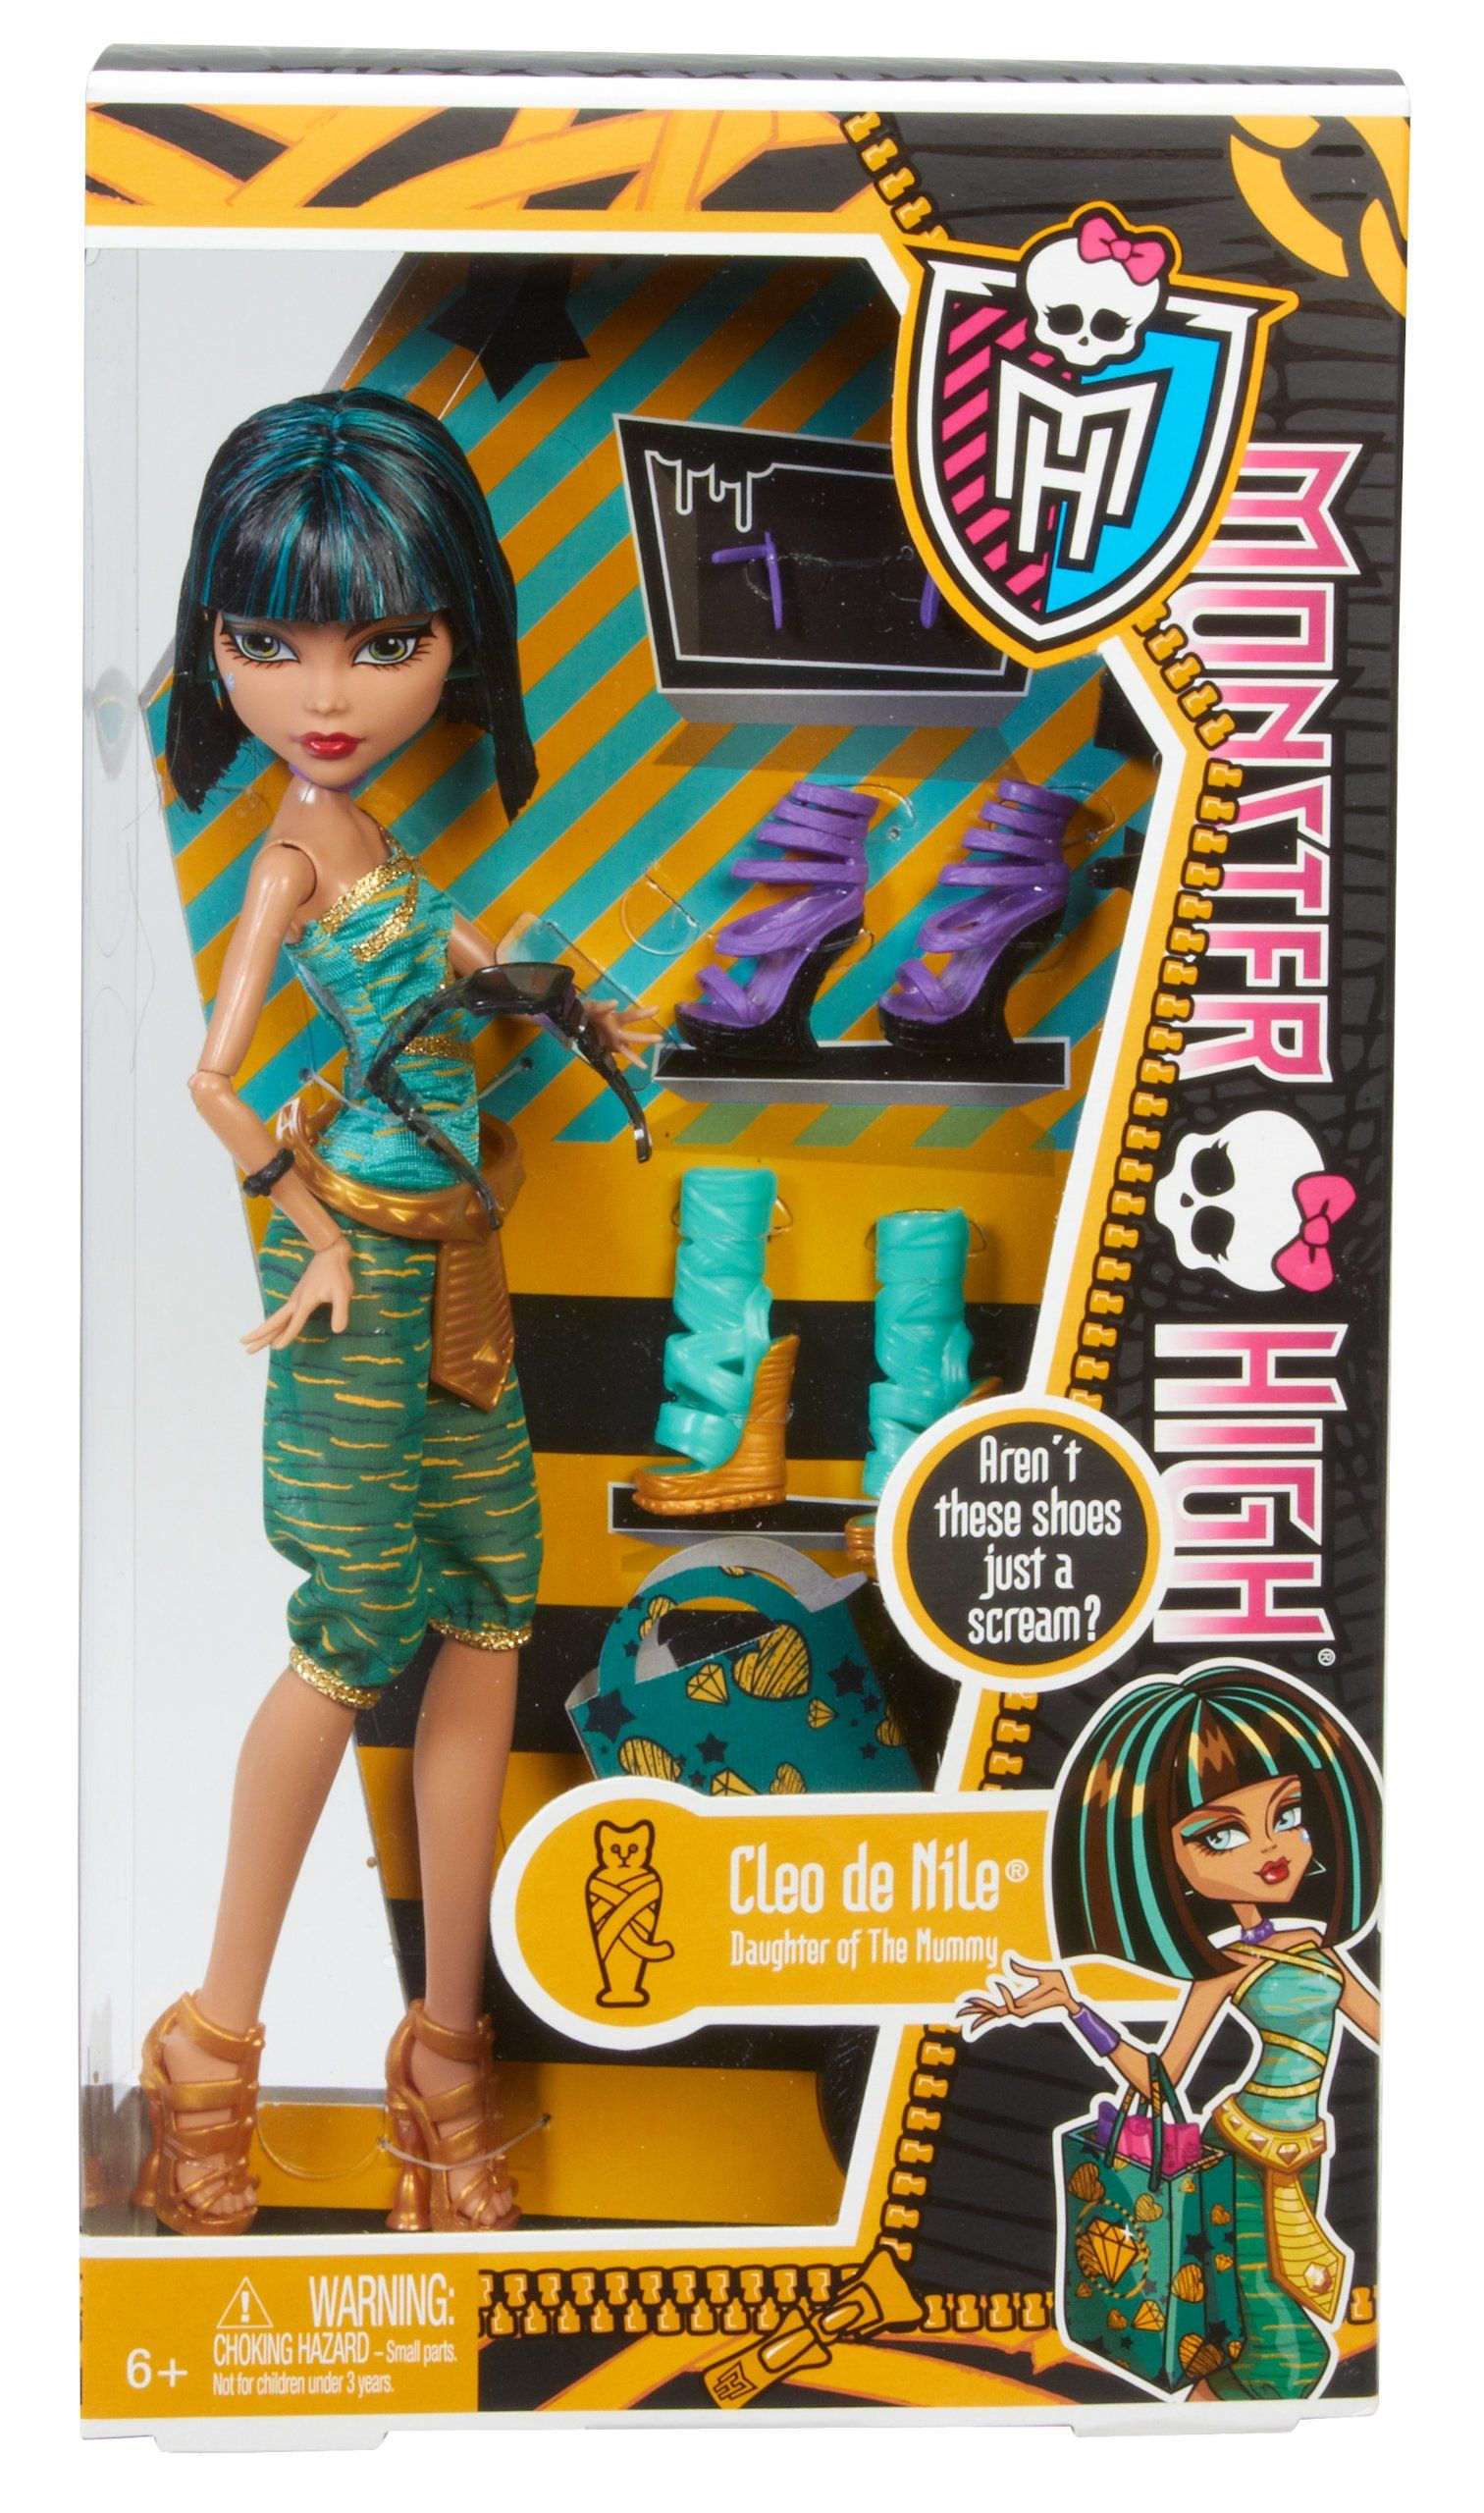 CLEO DE NILE -  i Love Shoes Cleo de Nile:  Monster High - Amazon.co.uk: Toys & Games Item model numberBBR92 Date First Available28 Aug 2013